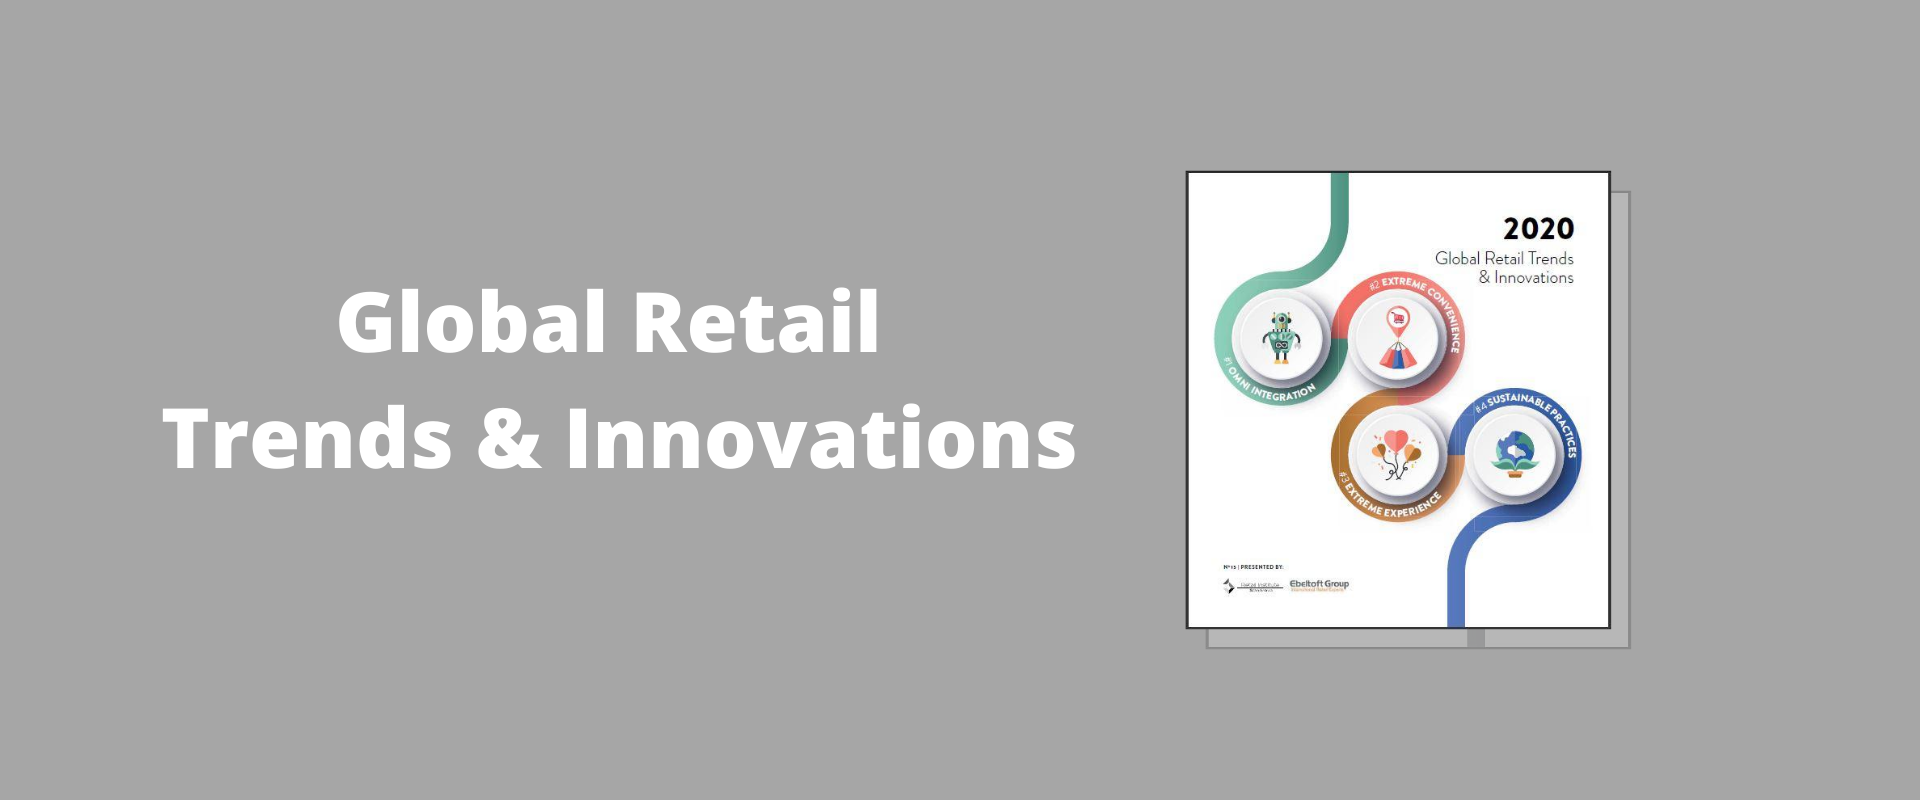 Global Retail Trends  U0026 Innovation 2020